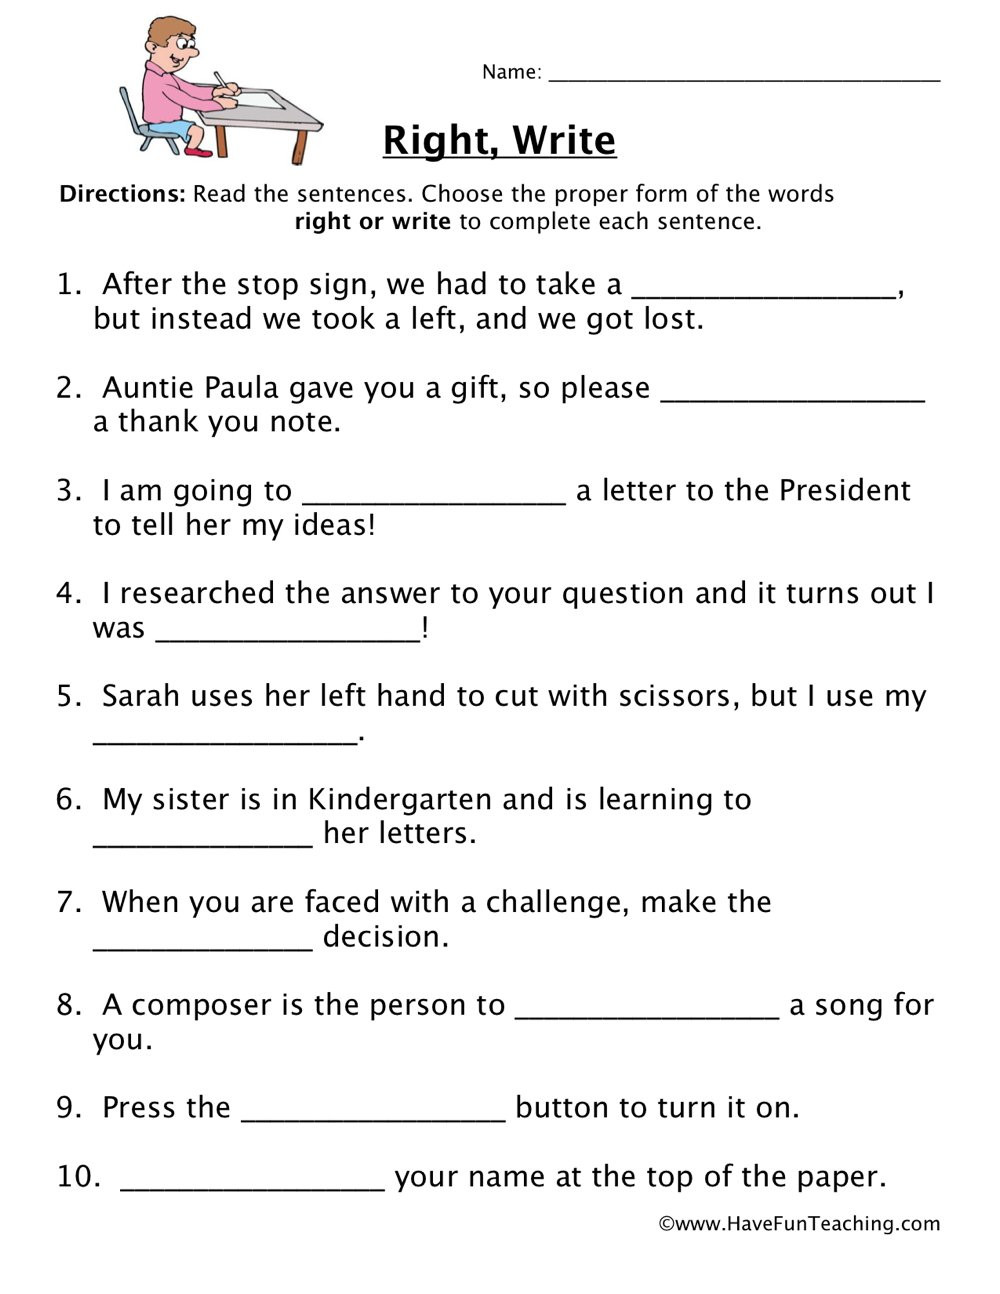 Homophones Worksheet 5th Grade Right Write Homophones Worksheet